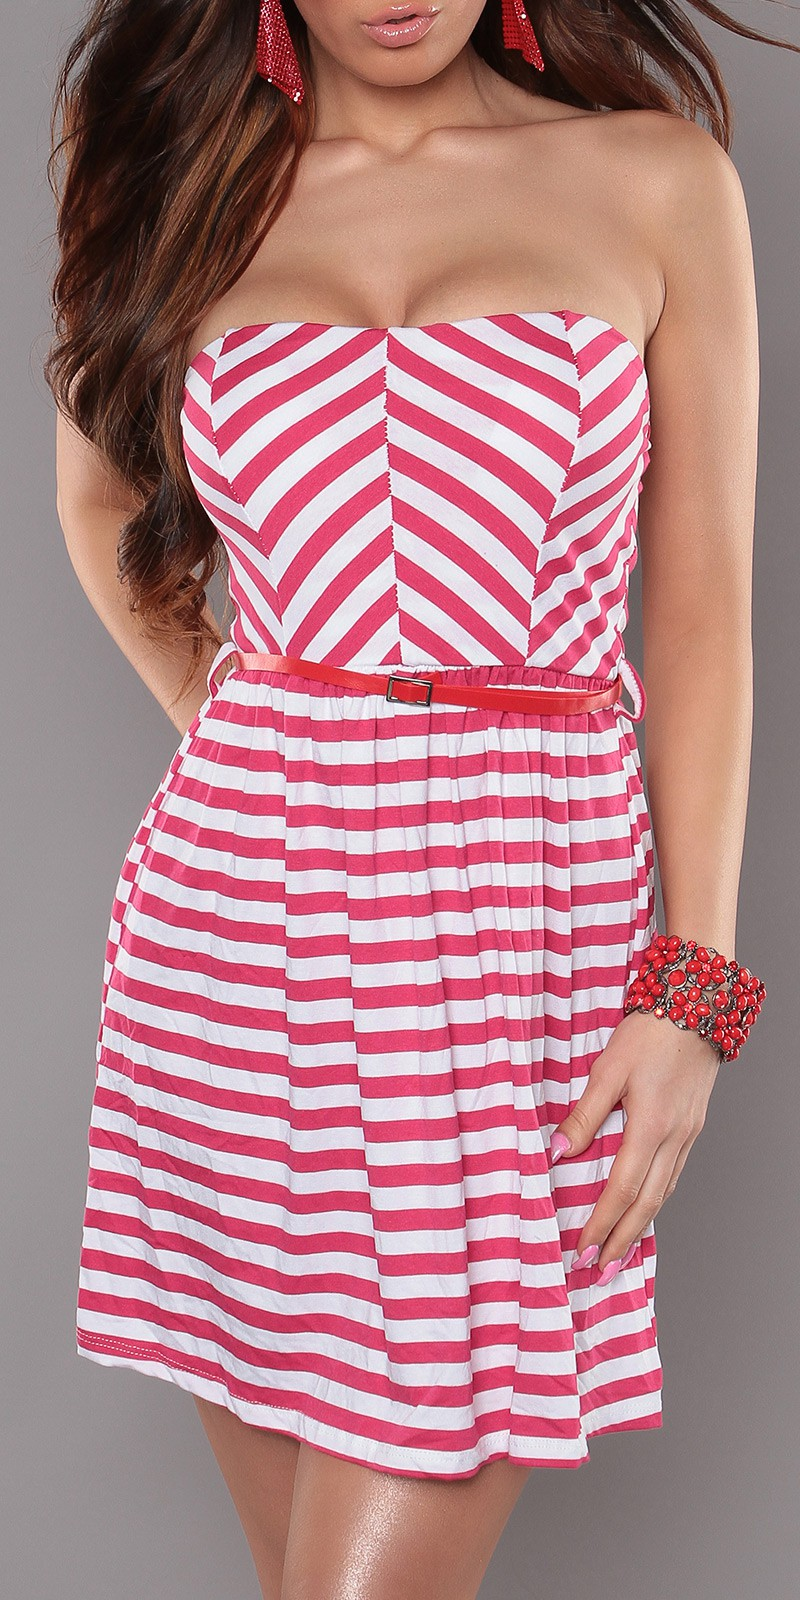 Fuchsia Strapless Striped Dress With Red Belt